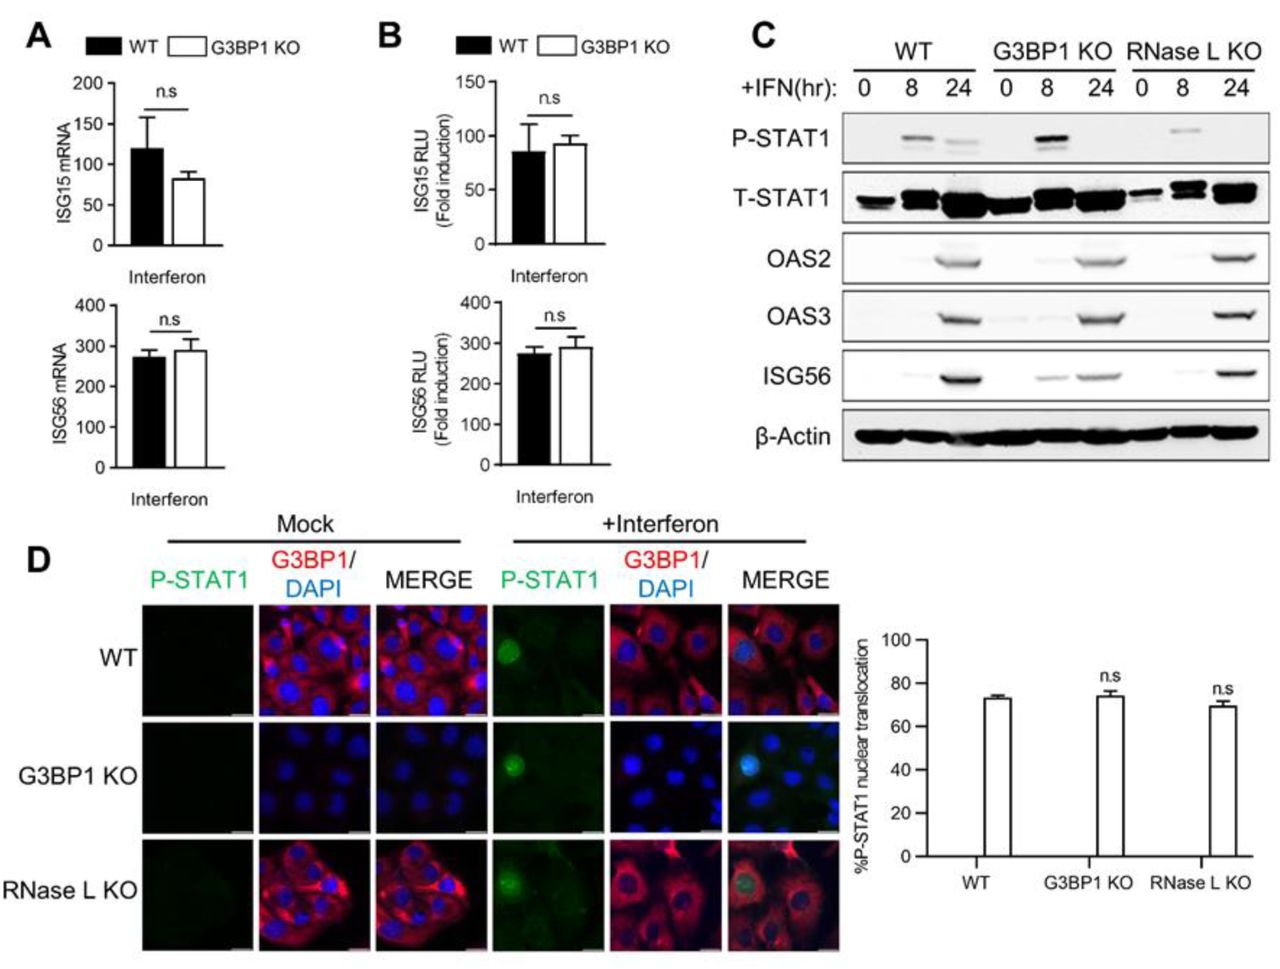 Effect of avSG formation on IFN signaling. HT1080 WT and G3BP1 KO cells were (A) treated with IFN-β (1000 U/ml) for 24h and mRNA levels of ISG15 and ISG56 were measured and normalized to GAPDH by qRT-PCR, (B) transfected with ISG15-luc or ISG56-luc reporter constructs along with β-galactosidase plasmids and 24h later treated with IFN-β (1000 U/ml) and luciferase activity were measured and normalized to β-galactosidase levels. (C) WT, G3BP1 KO and RNase L KO cells were treated with IFN-β (1000 U/ml) for indicated times and cell lysates were analyzed for phosphorylation of STAT1 and induction of OAS2, OAS3 and ISG56 in immunoblots. β-actin was used to normalize loading. (D) WT, G3BP1 KO and RNase L KO cells were treated with IFN-β (1000 U/ml) for 16h and nuclear translocation of p-STAT1 was determined by immunofluorescence and nucleus was stained with DAPI, (right) quantification of p-STAT1 nuclear translocation from five random fields. Data represent mean ± S.E. for three independent experiments. n.s: not significant, WT: Wild-Type.